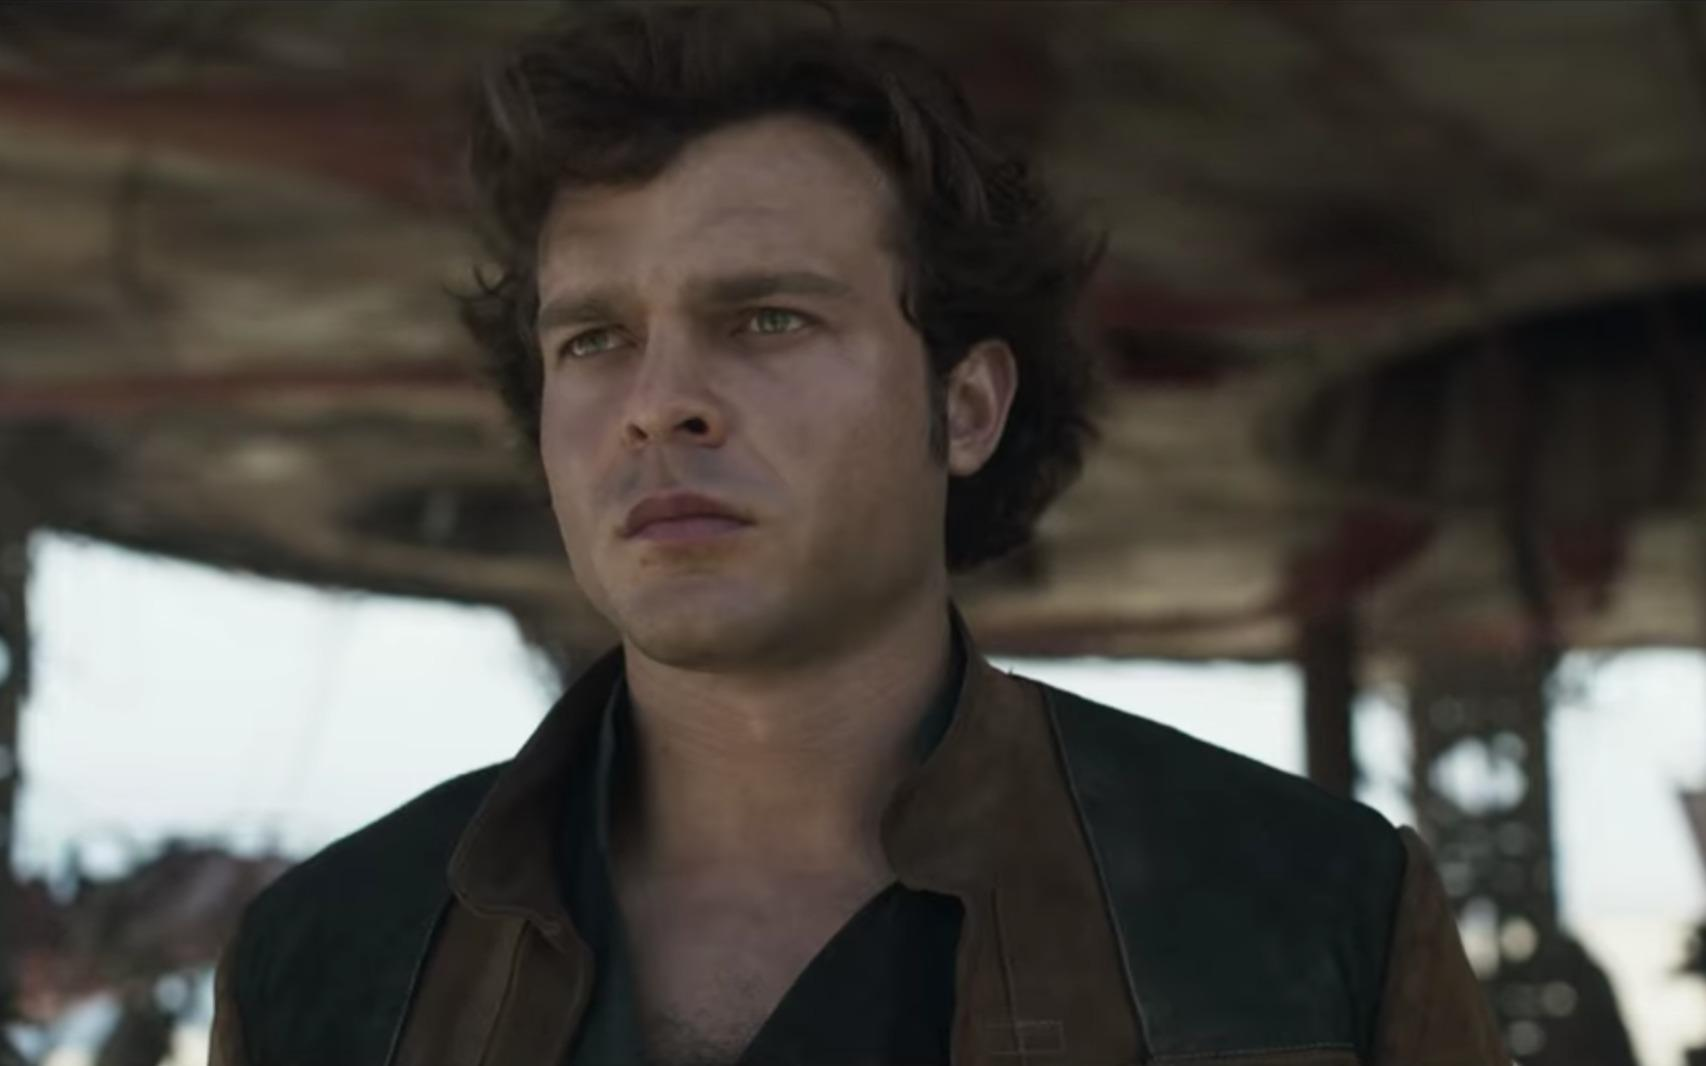 solo-a-star-wars-story-new-image-high-res-photos-and-rogue-one-character-spotted1223